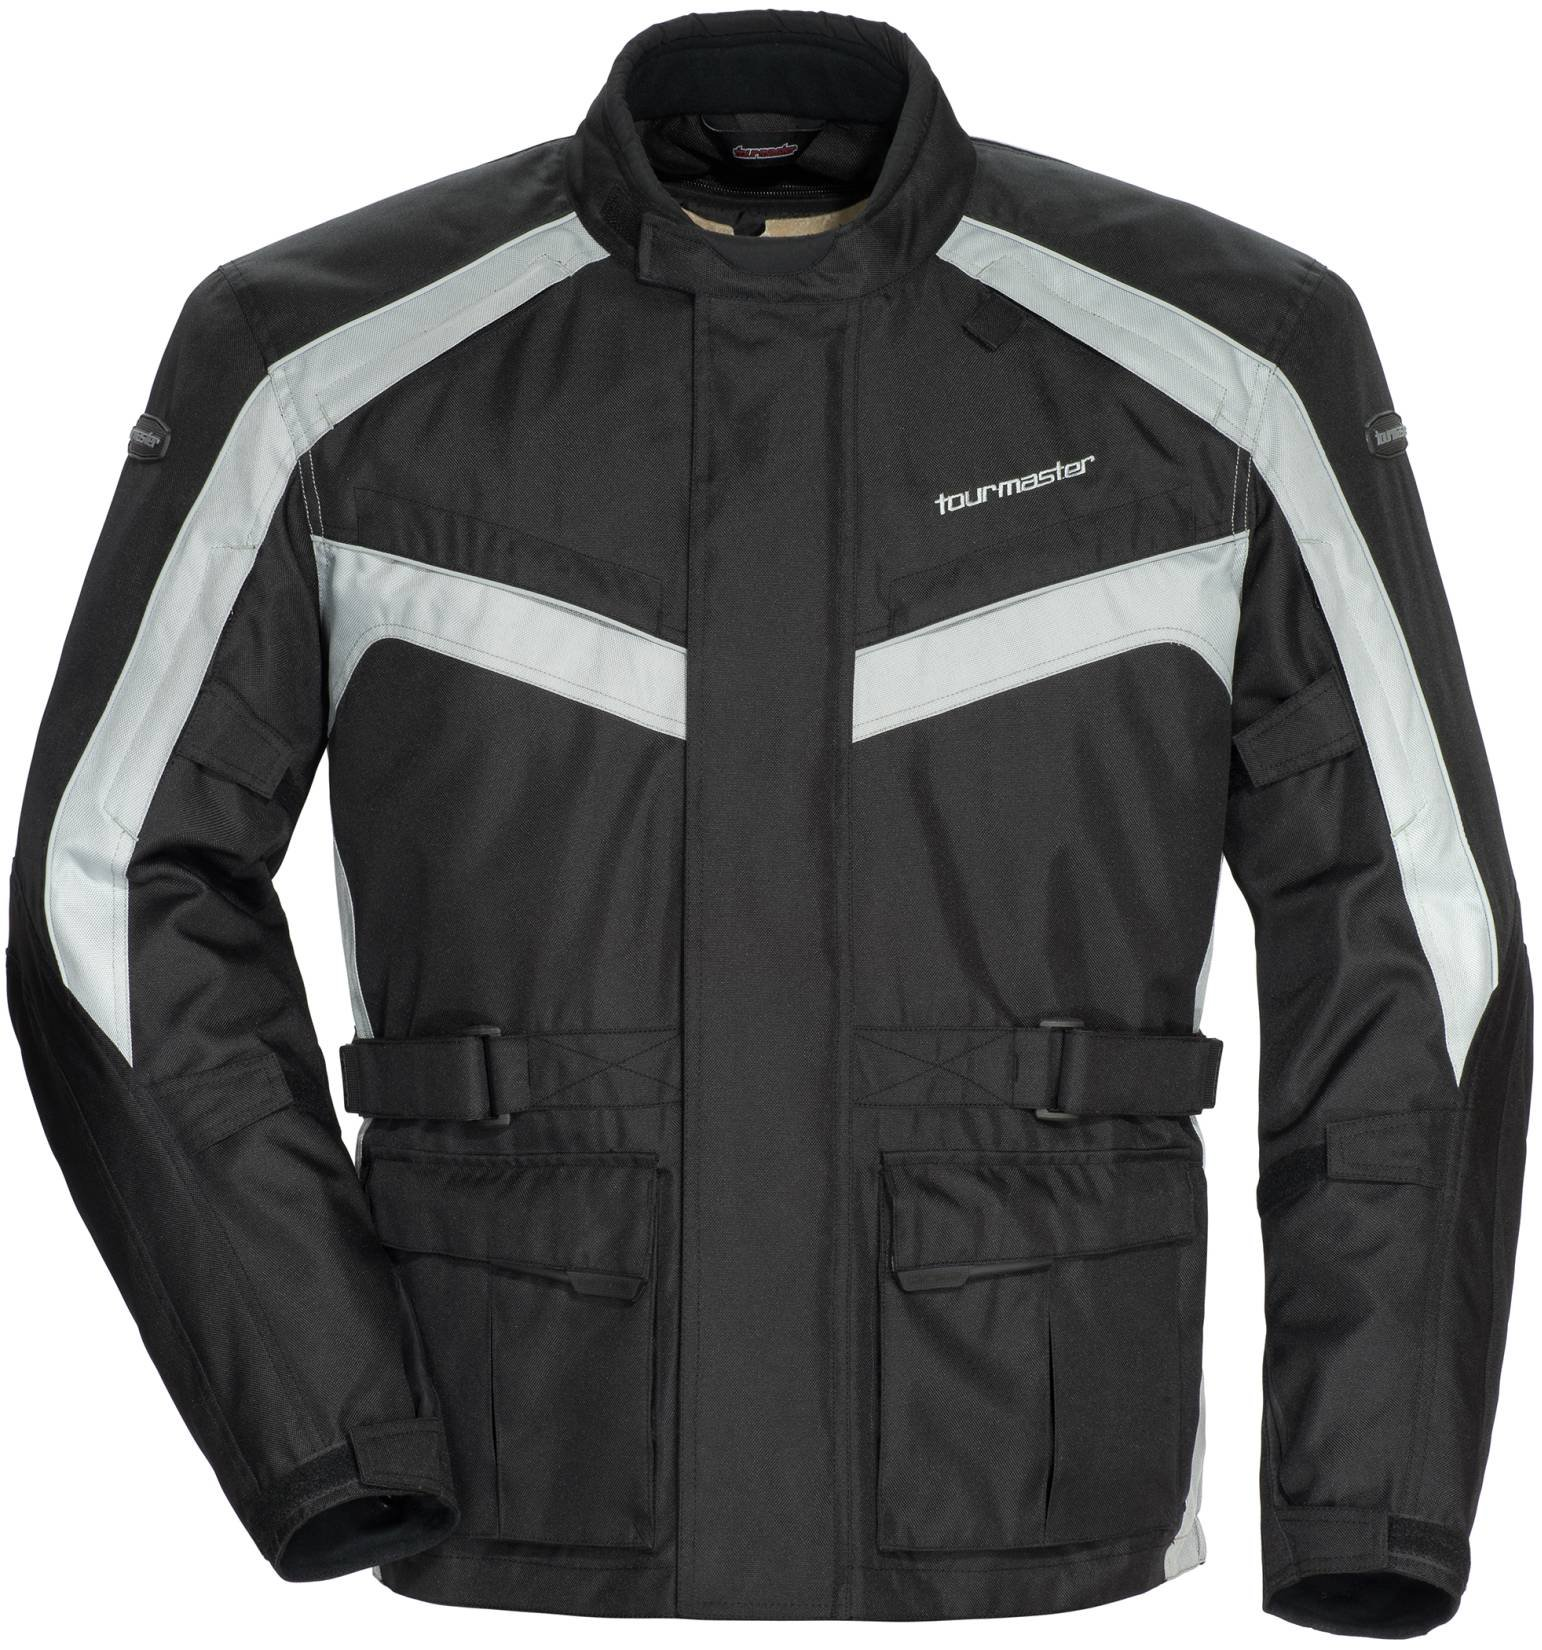 TourMaster Saber 4.0 Men's 3/4 Outer Shell Textile Motorcycle Jacket (Silver/Black, XX-Large)